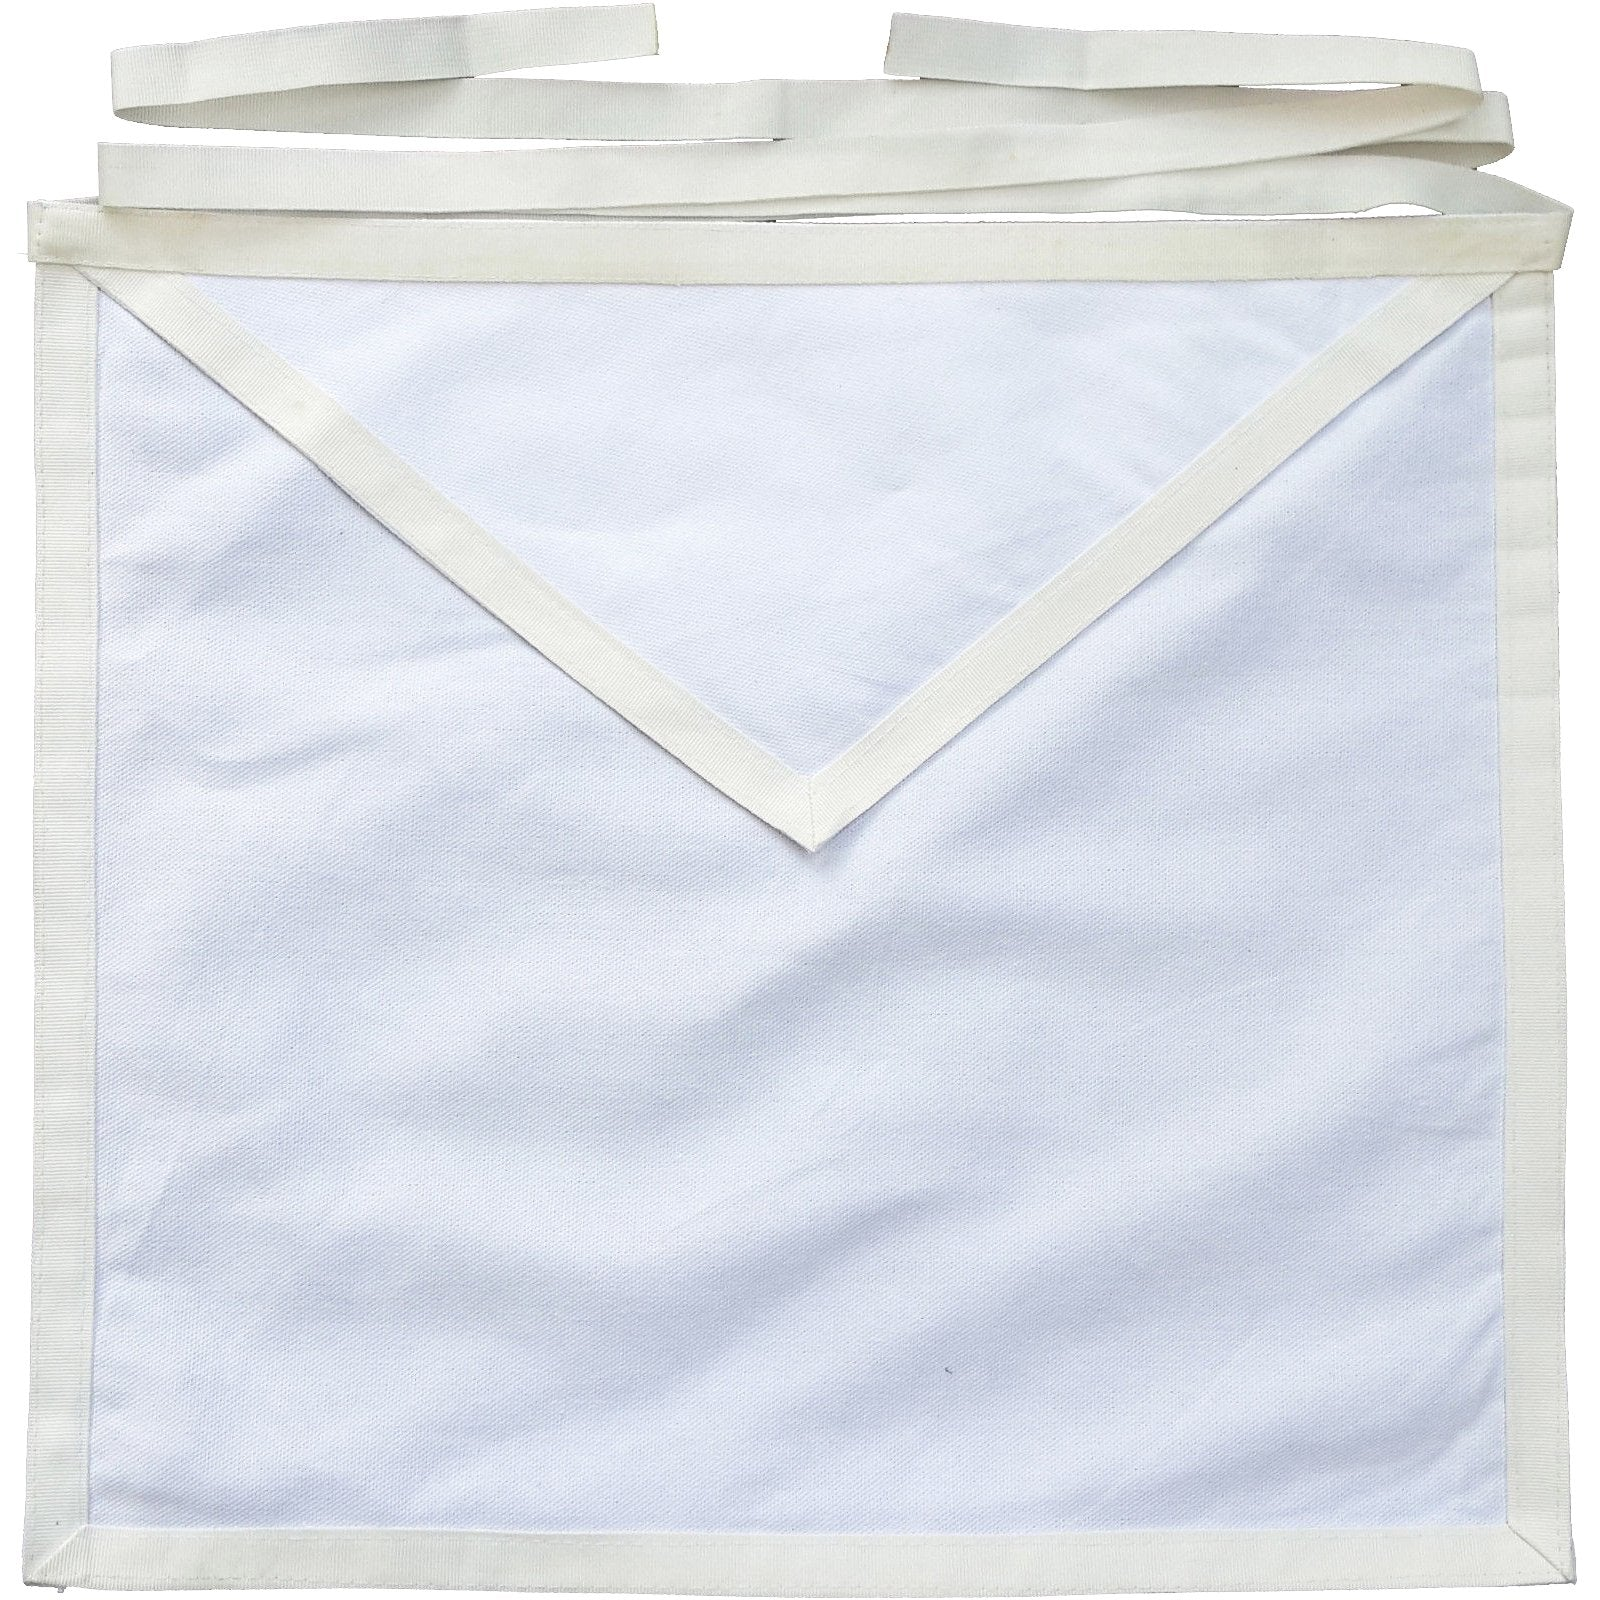 PACK OF 6 MASONIC COTTON DUCK CLOTH CANDIDATE APPRENTICE APRONS